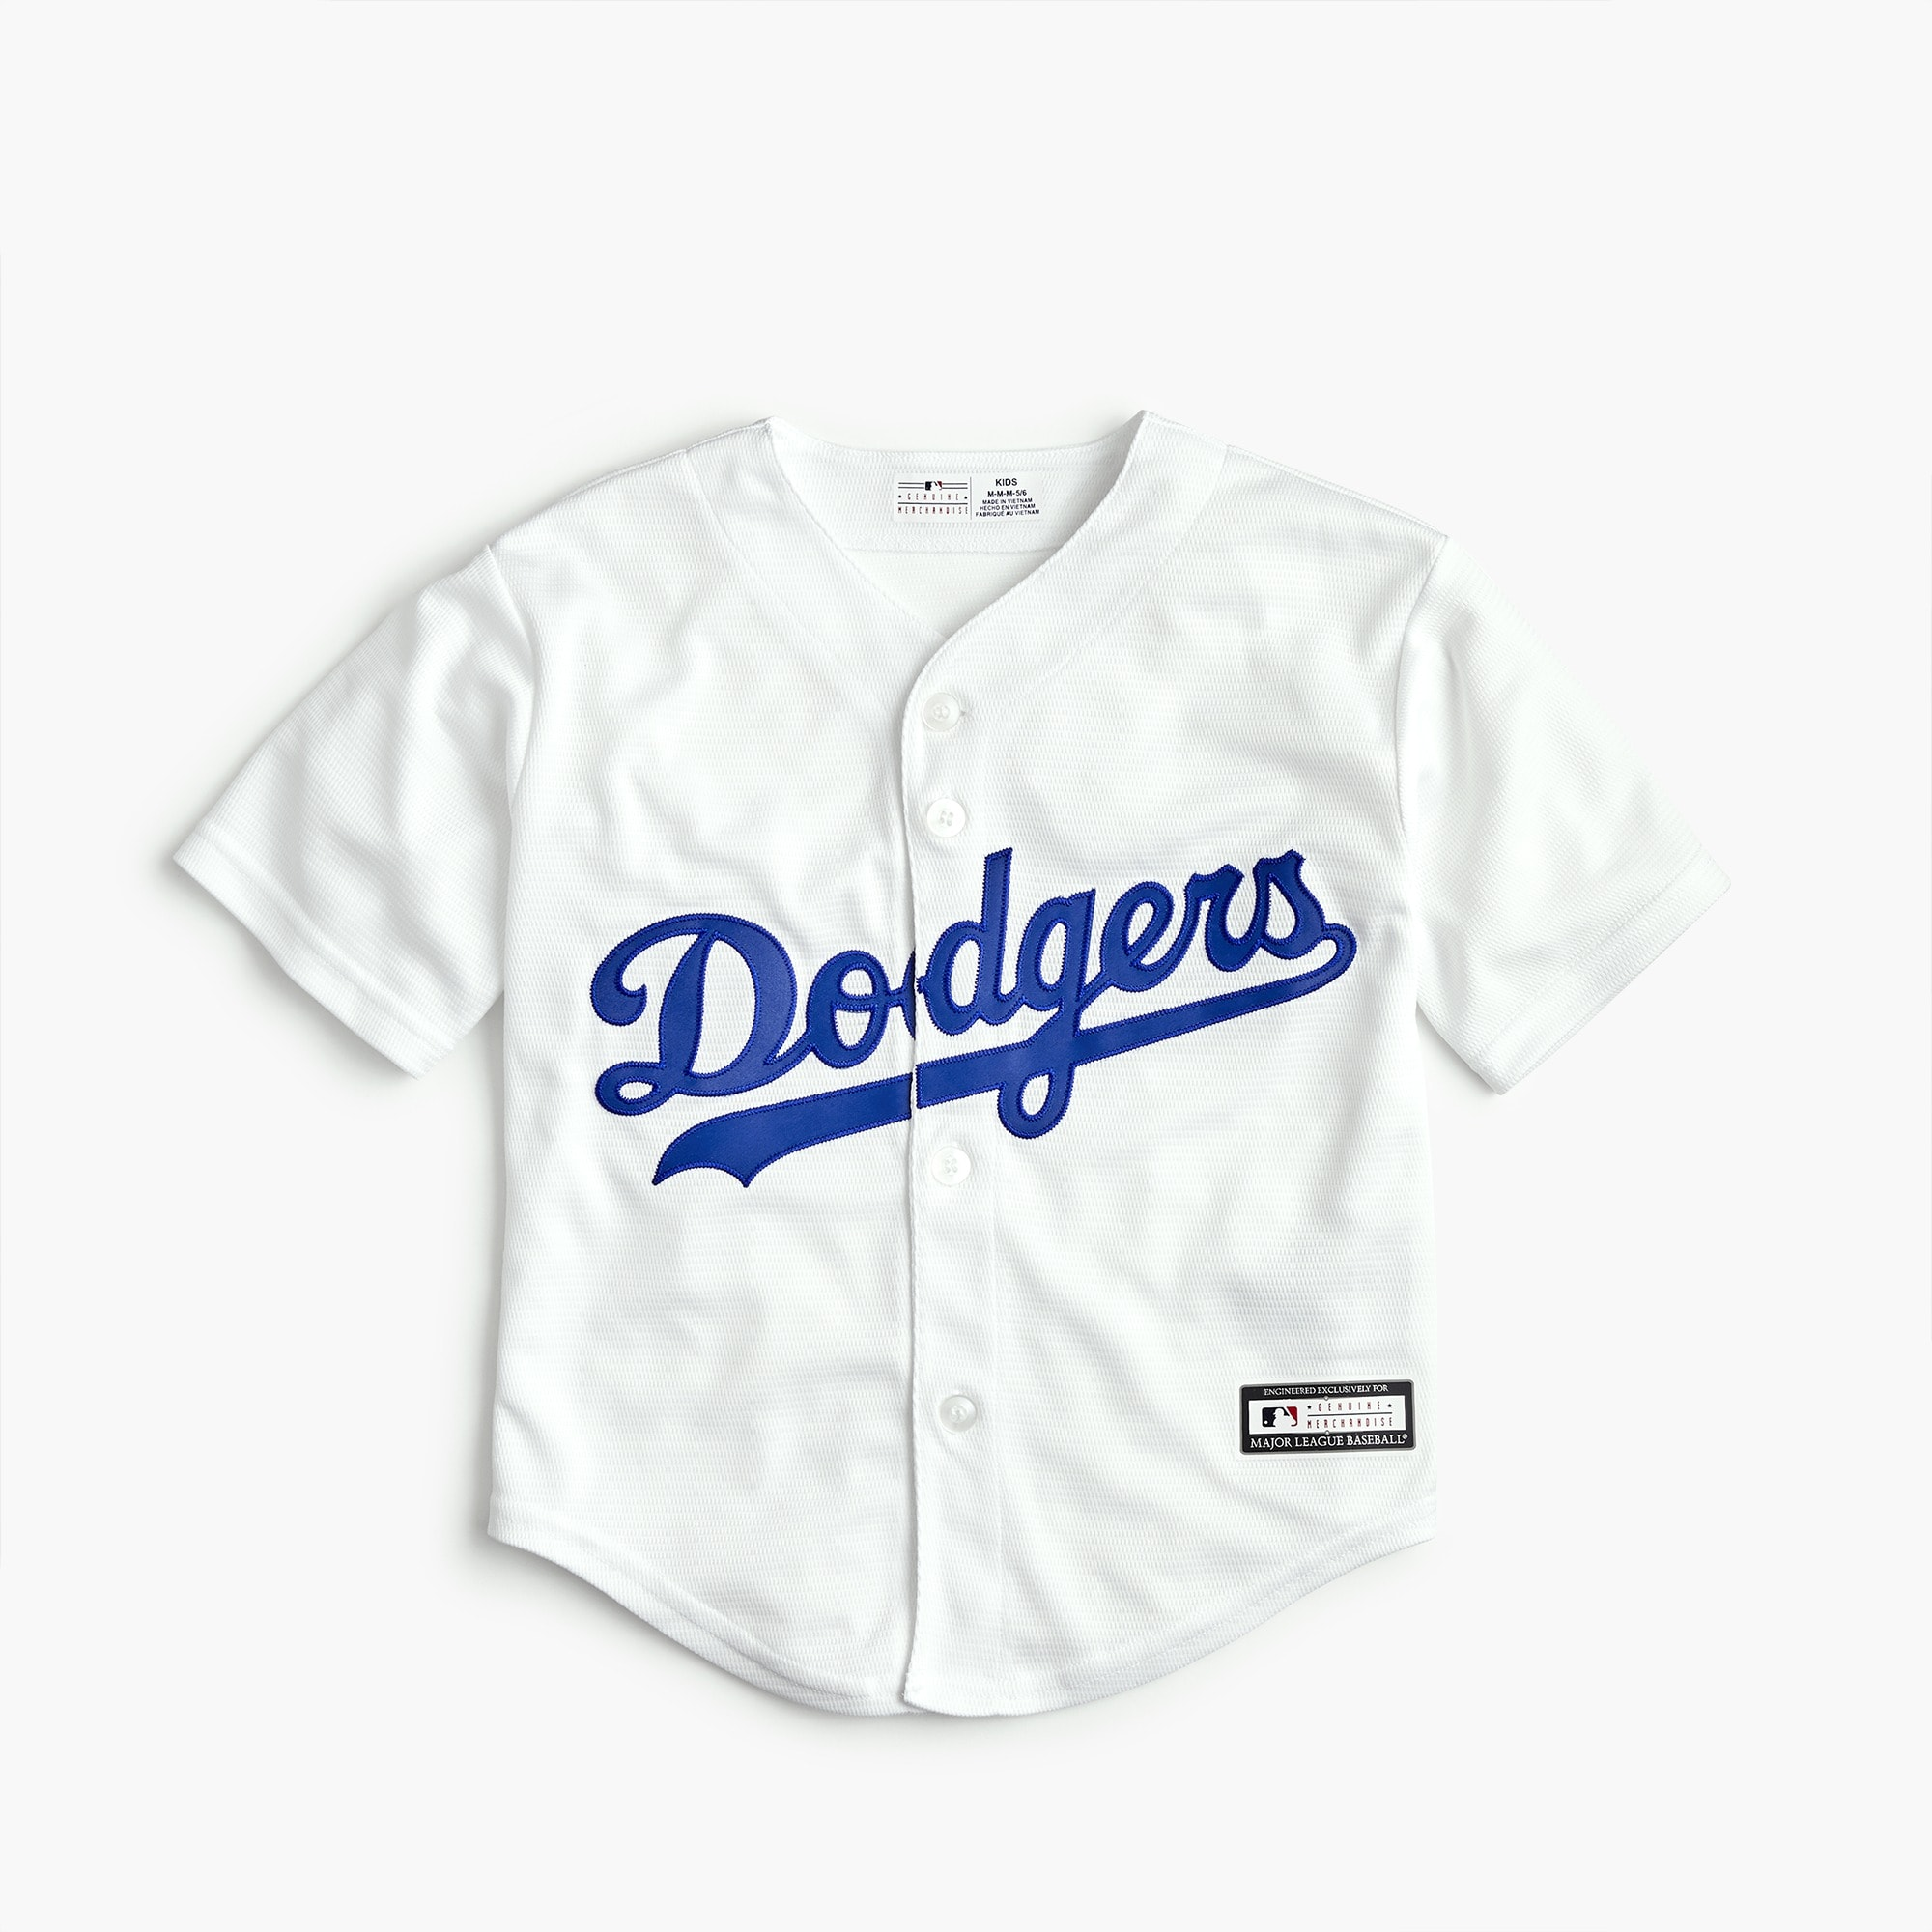 boys Kids' Los Angeles Dodgers jersey